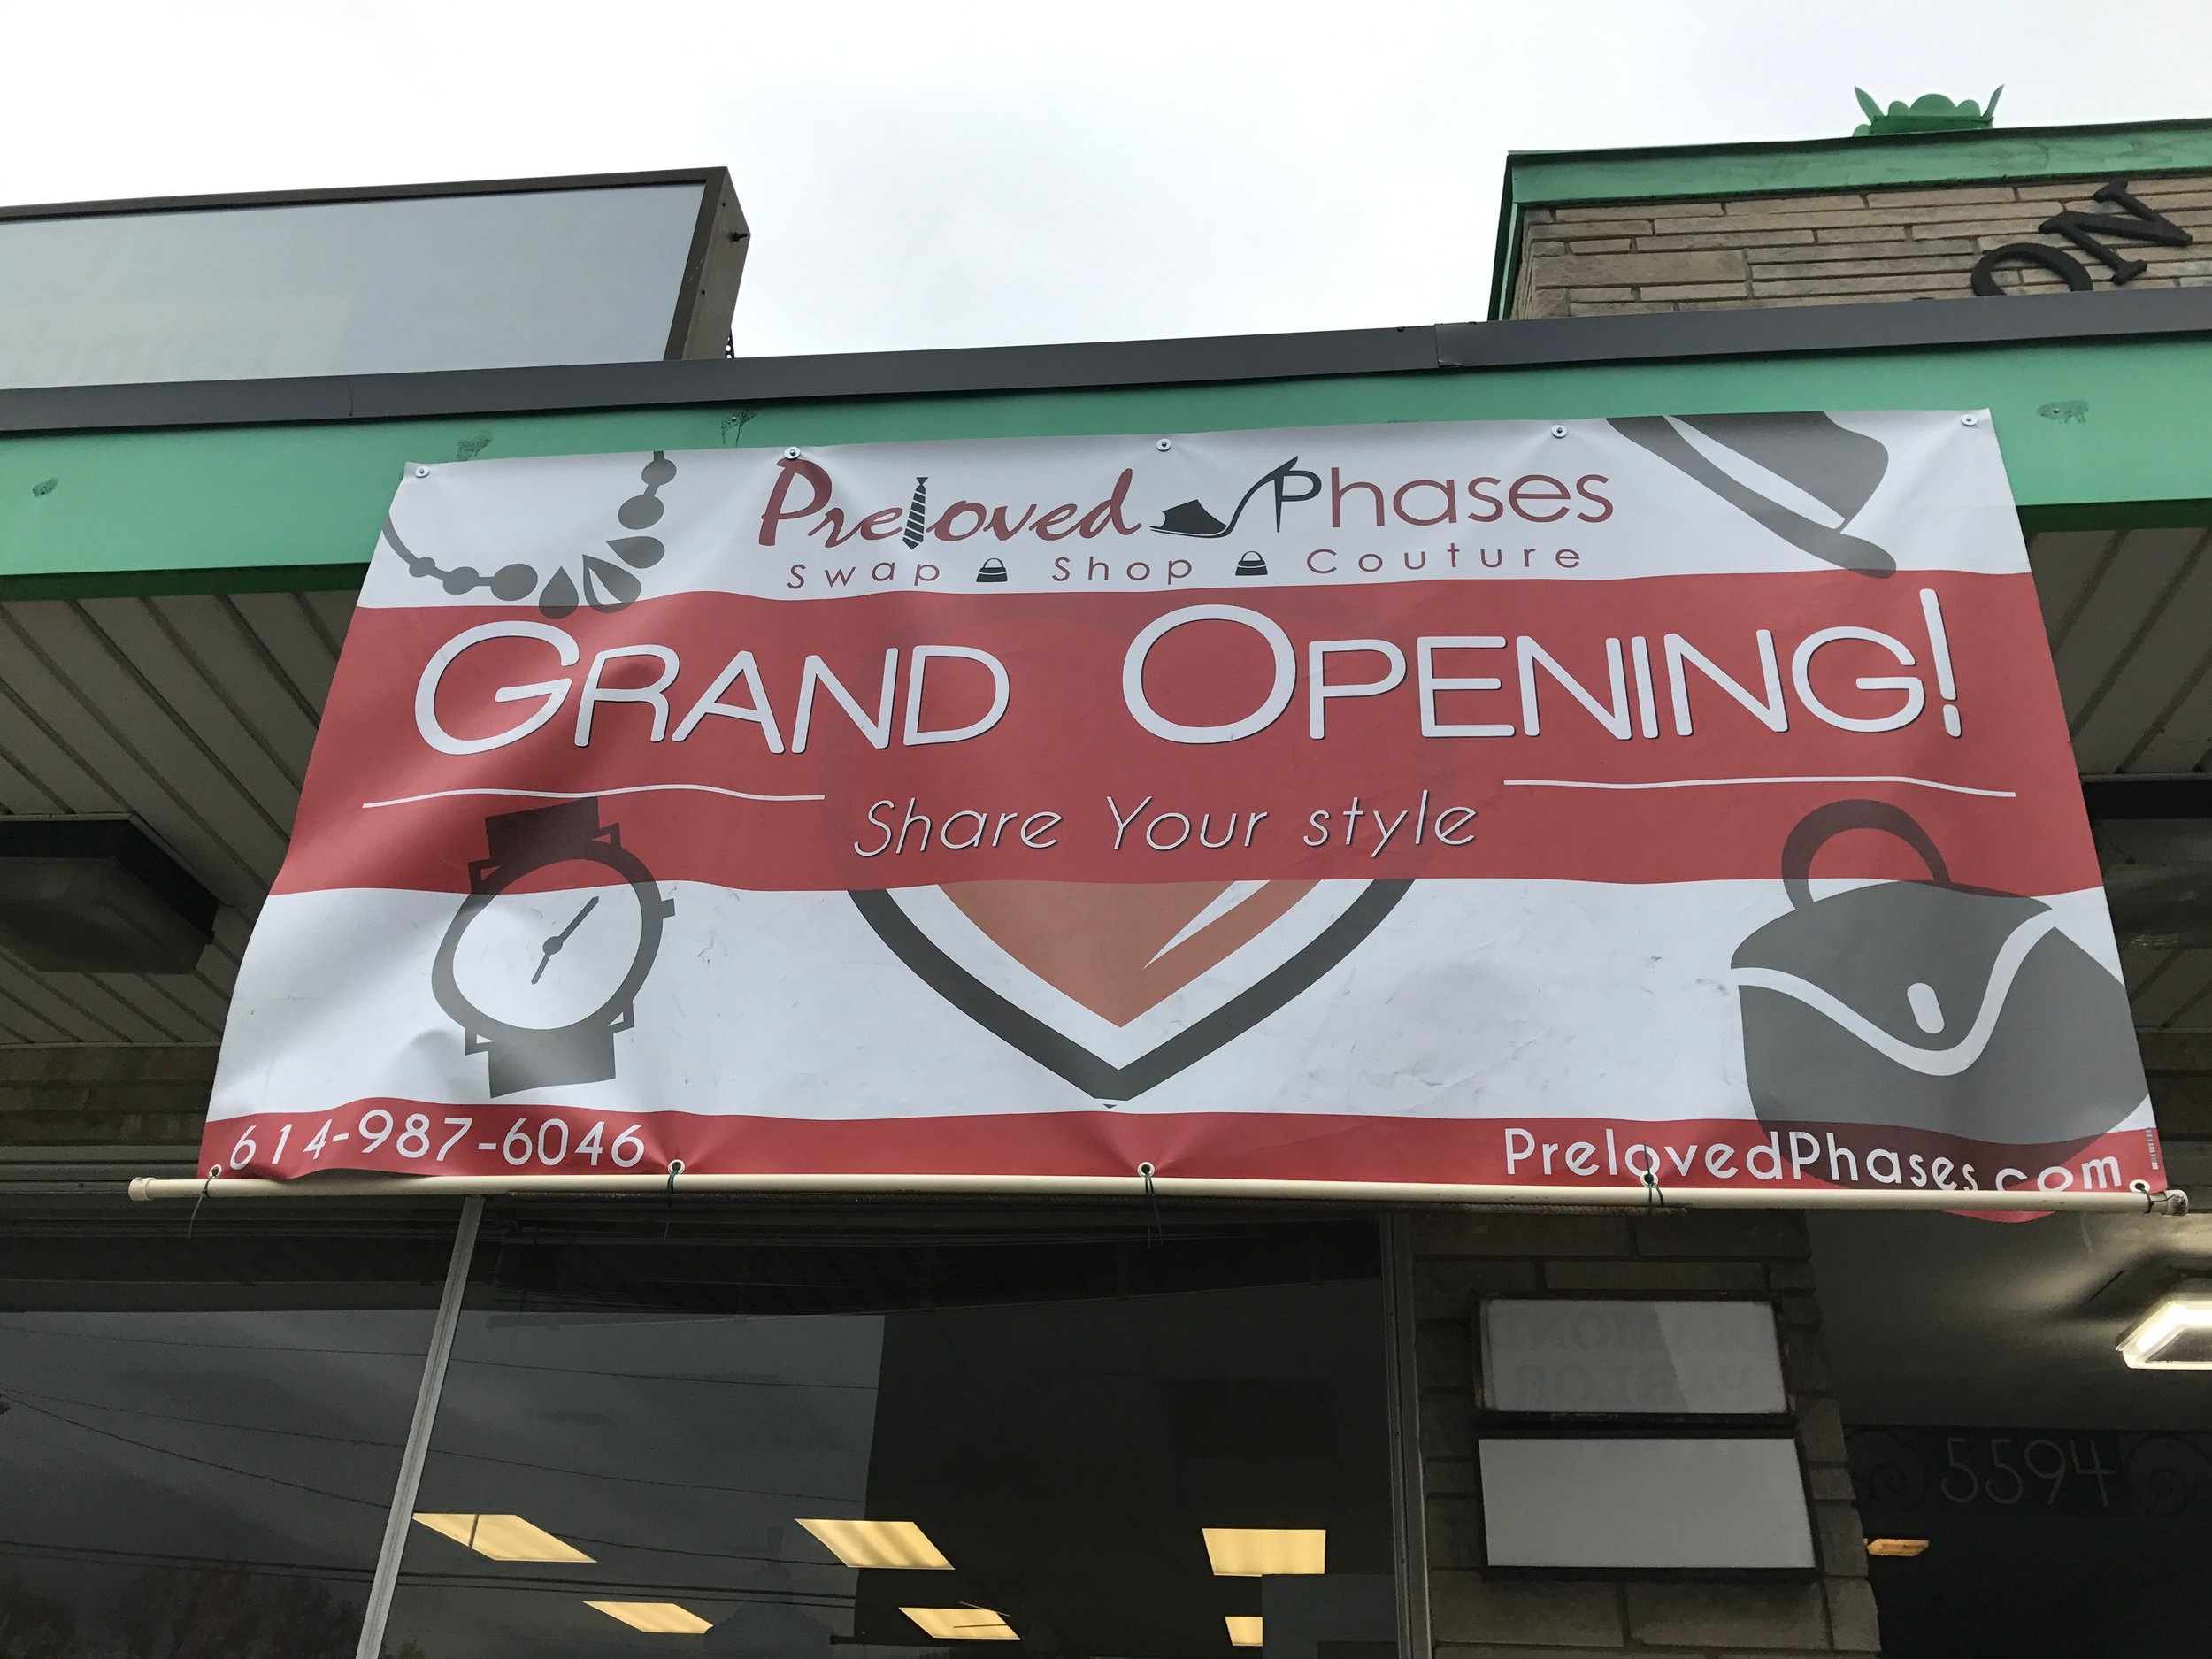 Preloved Phases grand opening!